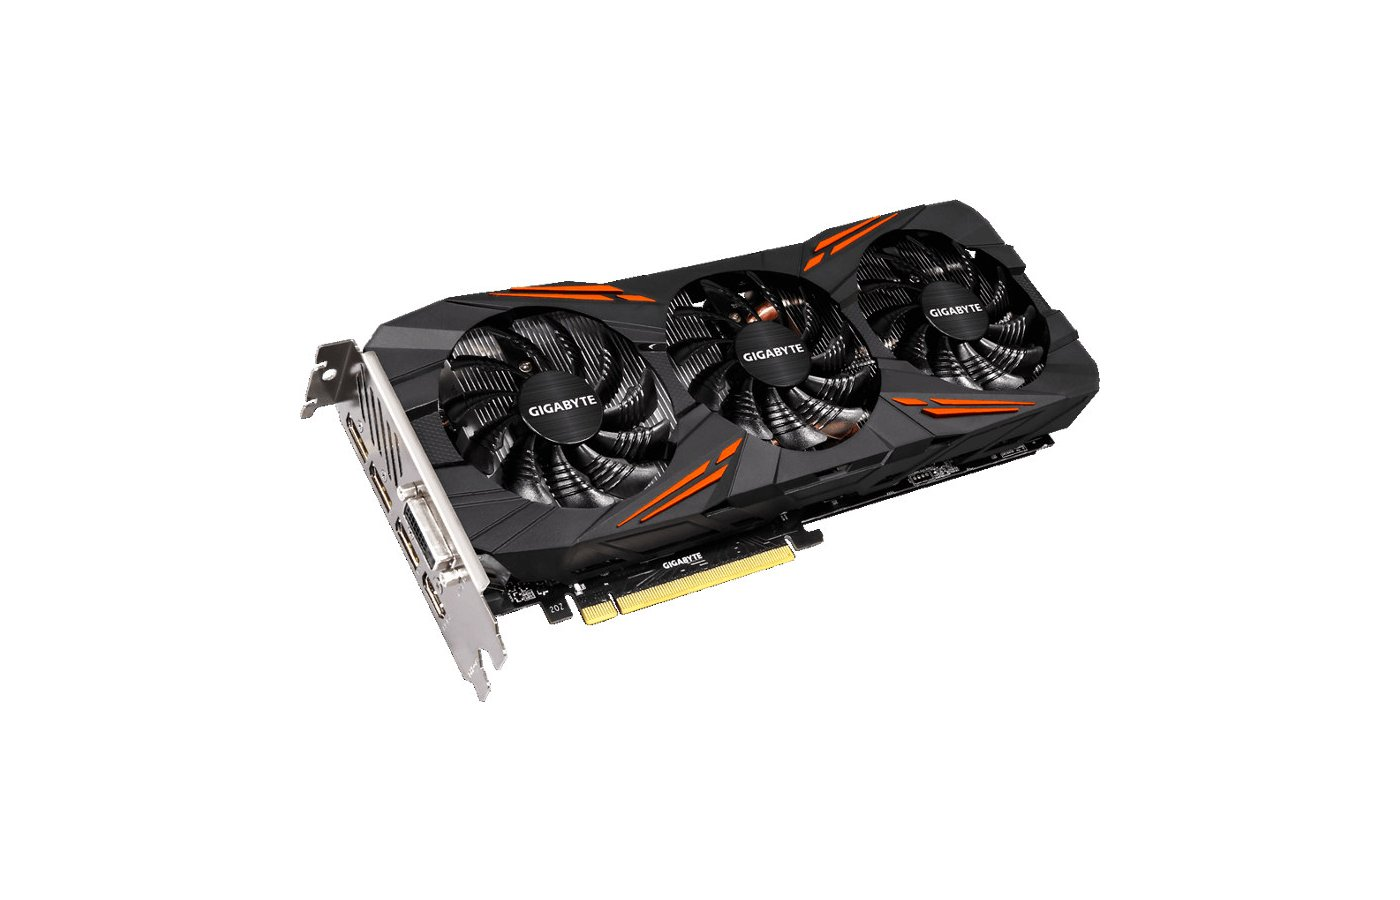 Видеокарта Gigabyte PCI-E GV-N1070G1 GAMING-8GD nVidia GeForce GTX 1070 8192Mb 256bit Ret